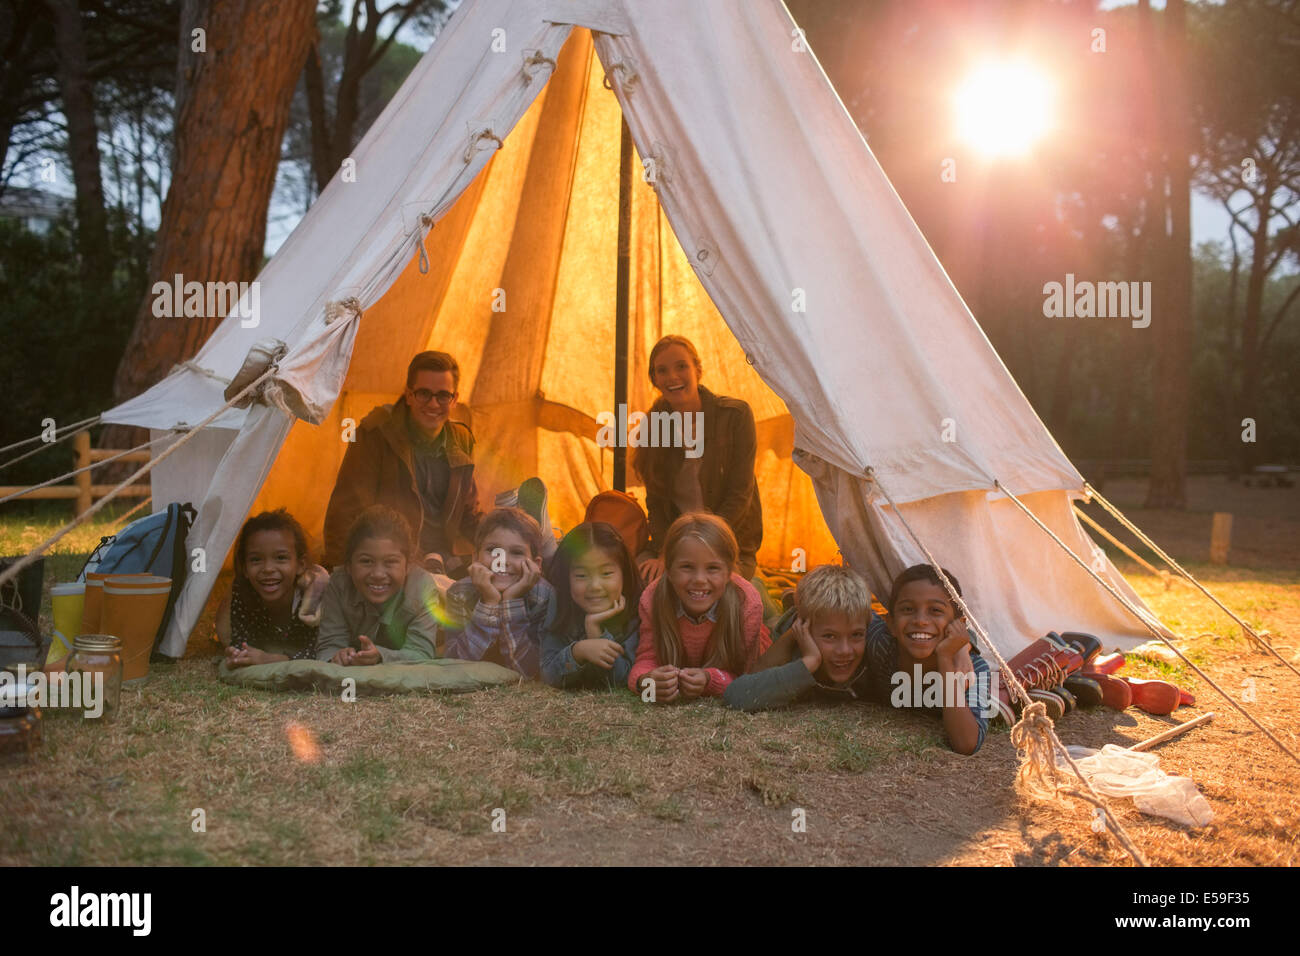 Students and teachers smiling in teepee at campsite - Stock Image